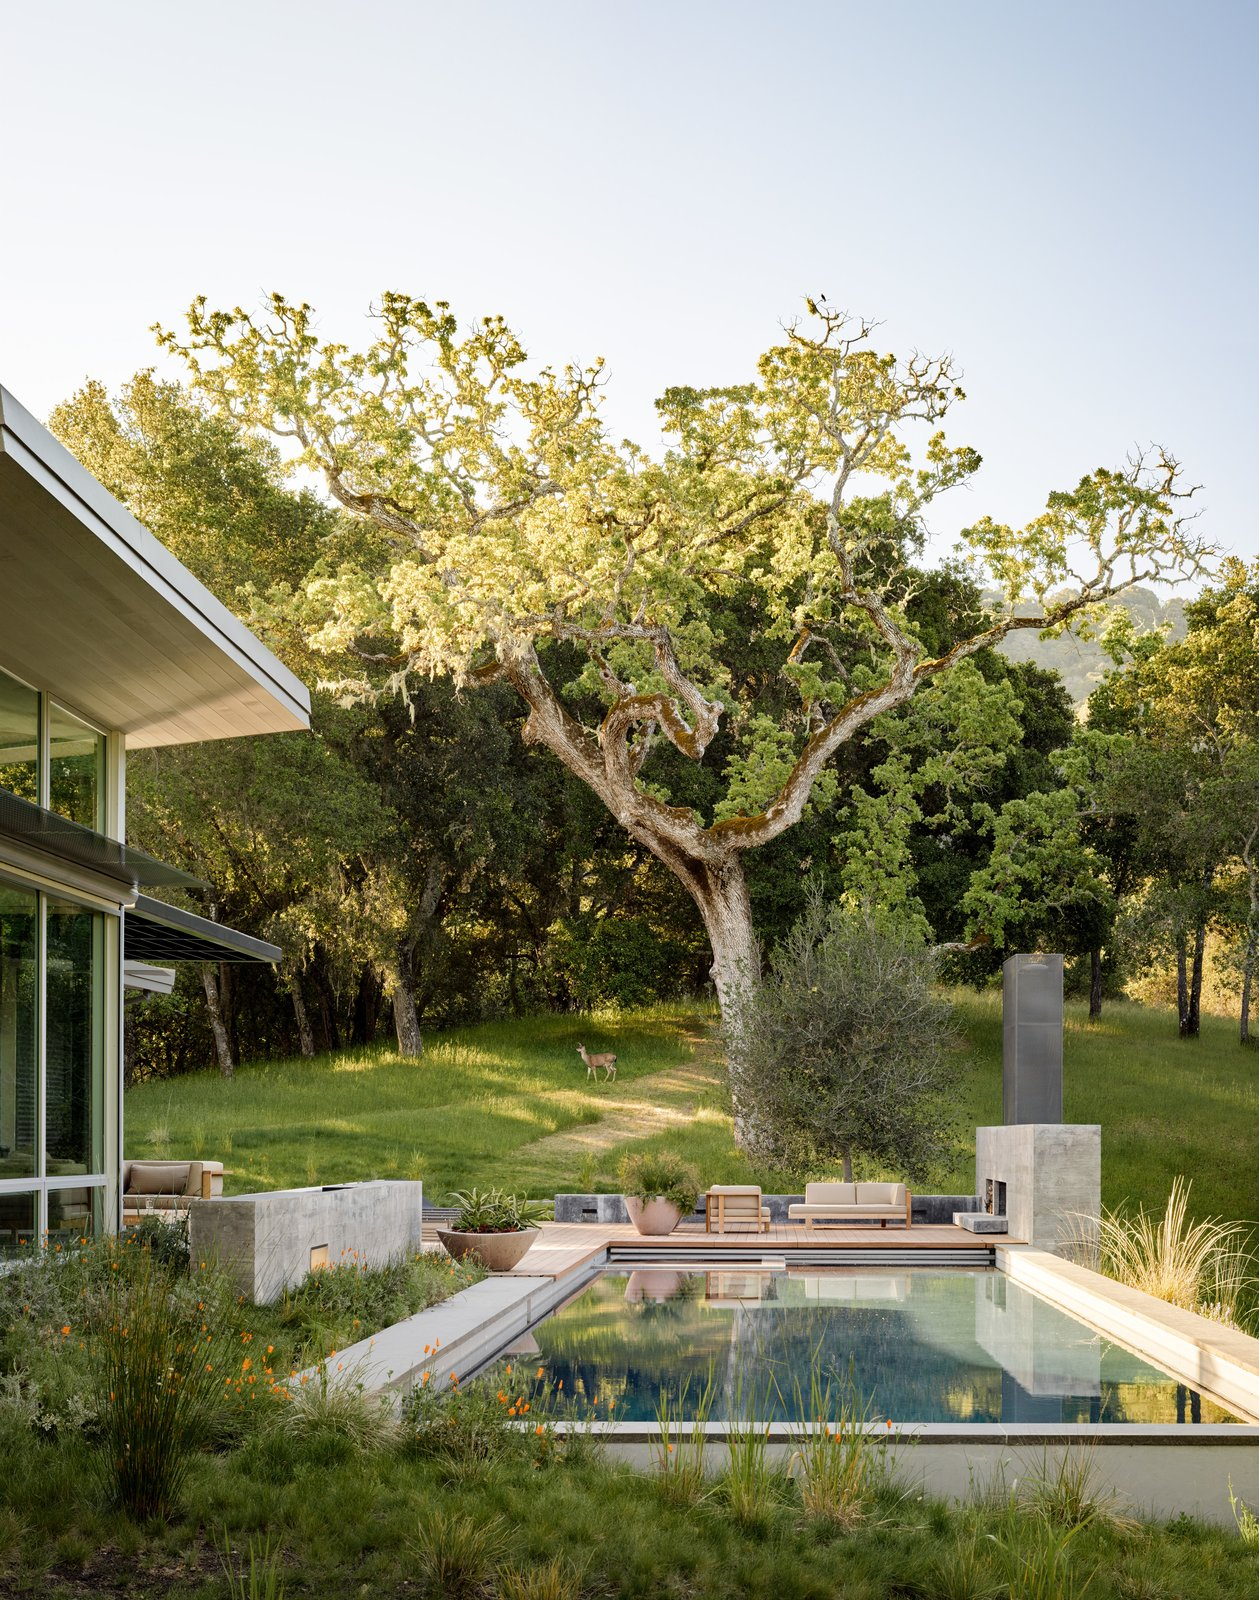 Wildlife are frequent visitors here, but the area's active woodpeckers aren't very welcome, so the house is clad in corrugated metal siding by Recla Metals. Tagged: Outdoor, Back Yard, Front Yard, Side Yard, Swimming Pools, Tubs, Shower, Trees, and Grass.  Modern Pool Design by Dwell from A Meadow With Amenities